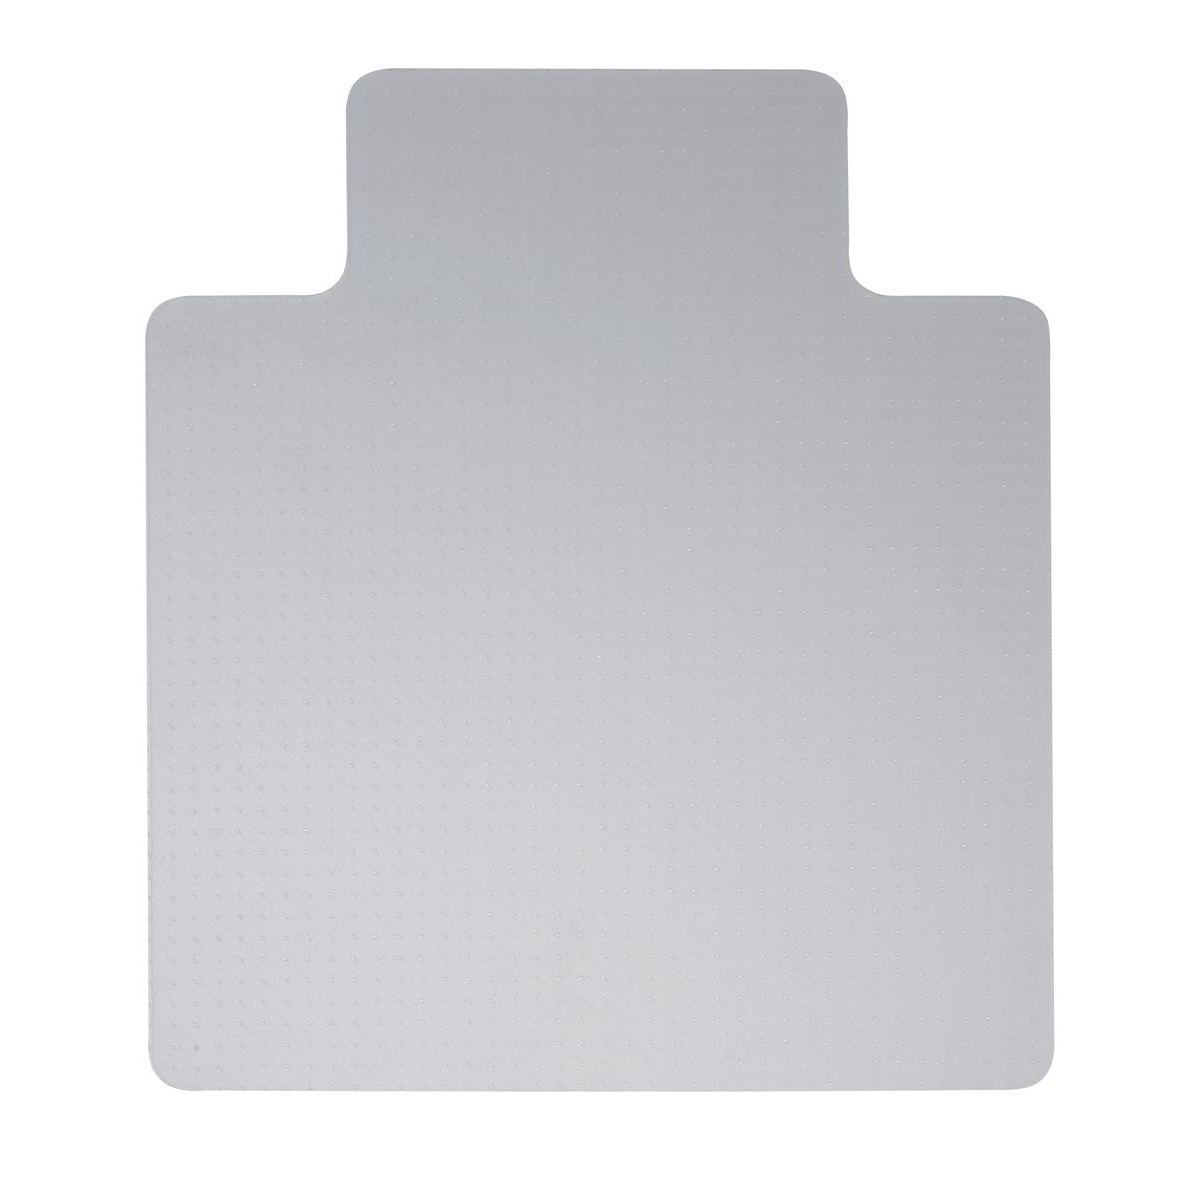 Chair mat 5 Star Office Chair Mat For Carpets PVC Lipped 1150x1340mm Clear/Transparent